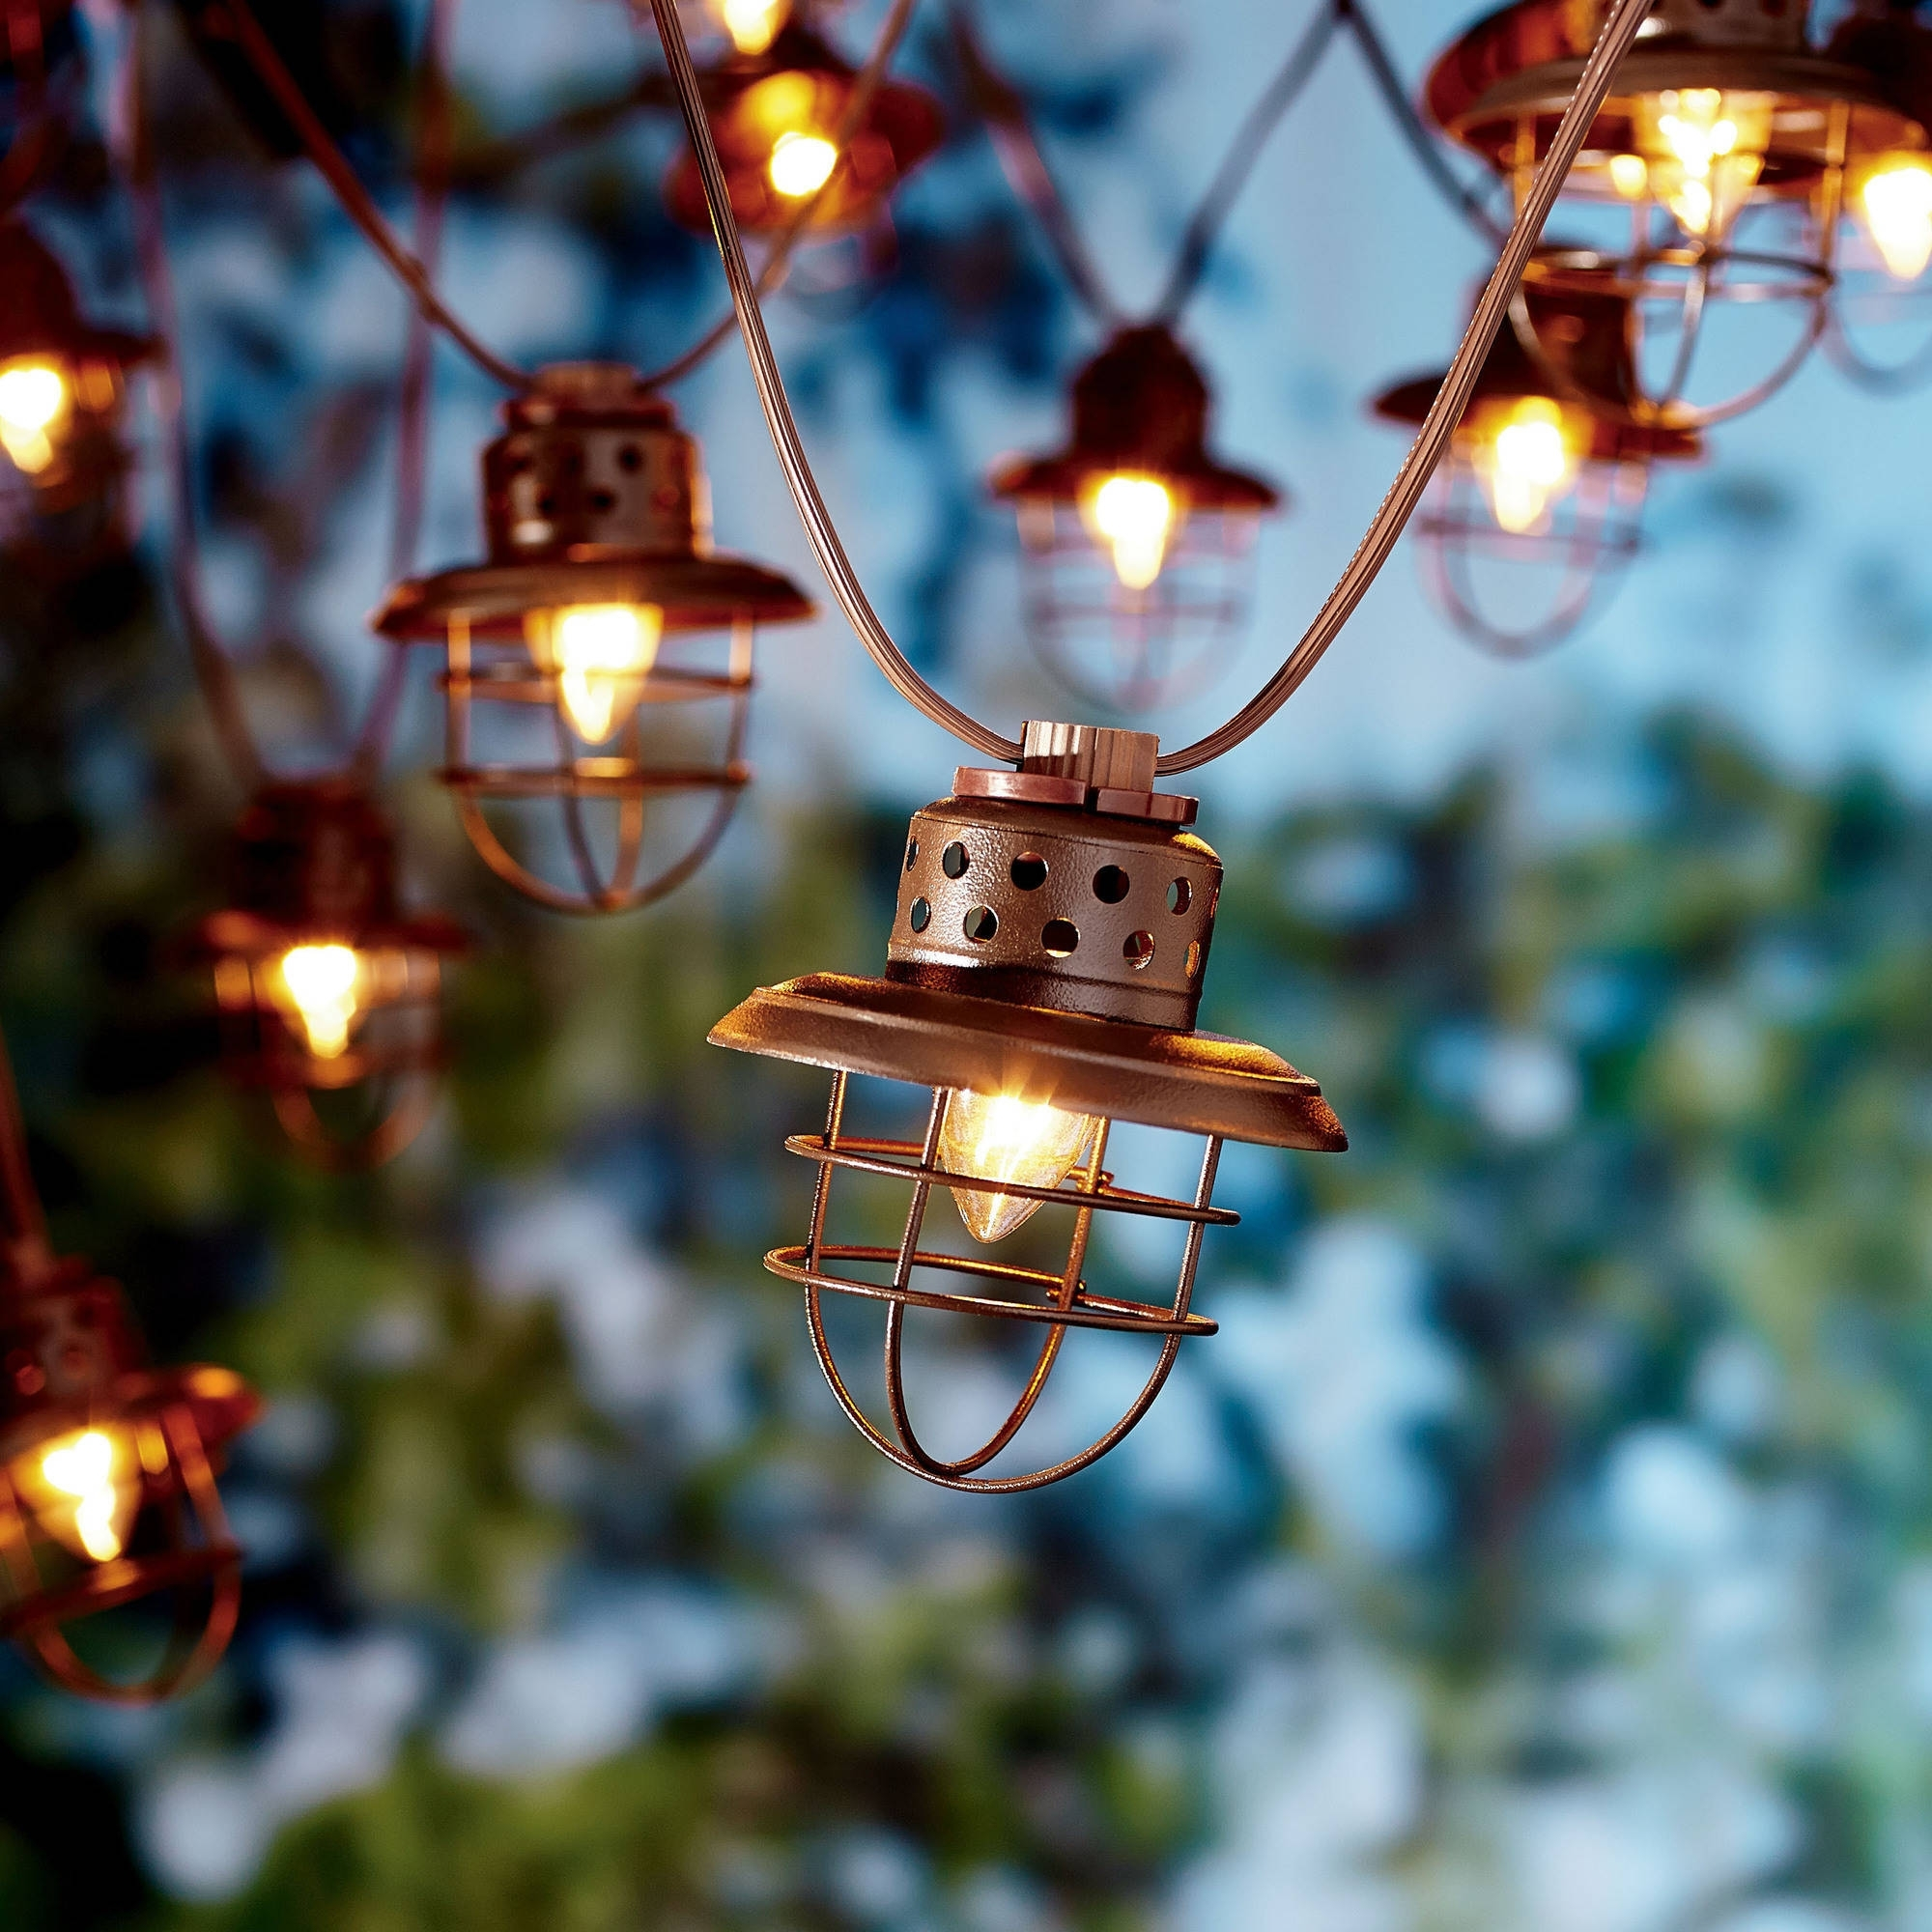 Better Homes And Gardens Outdoor Vintage Cage Lantern String Lights Intended For Favorite Walmart Outdoor Lanterns (View 20 of 20)